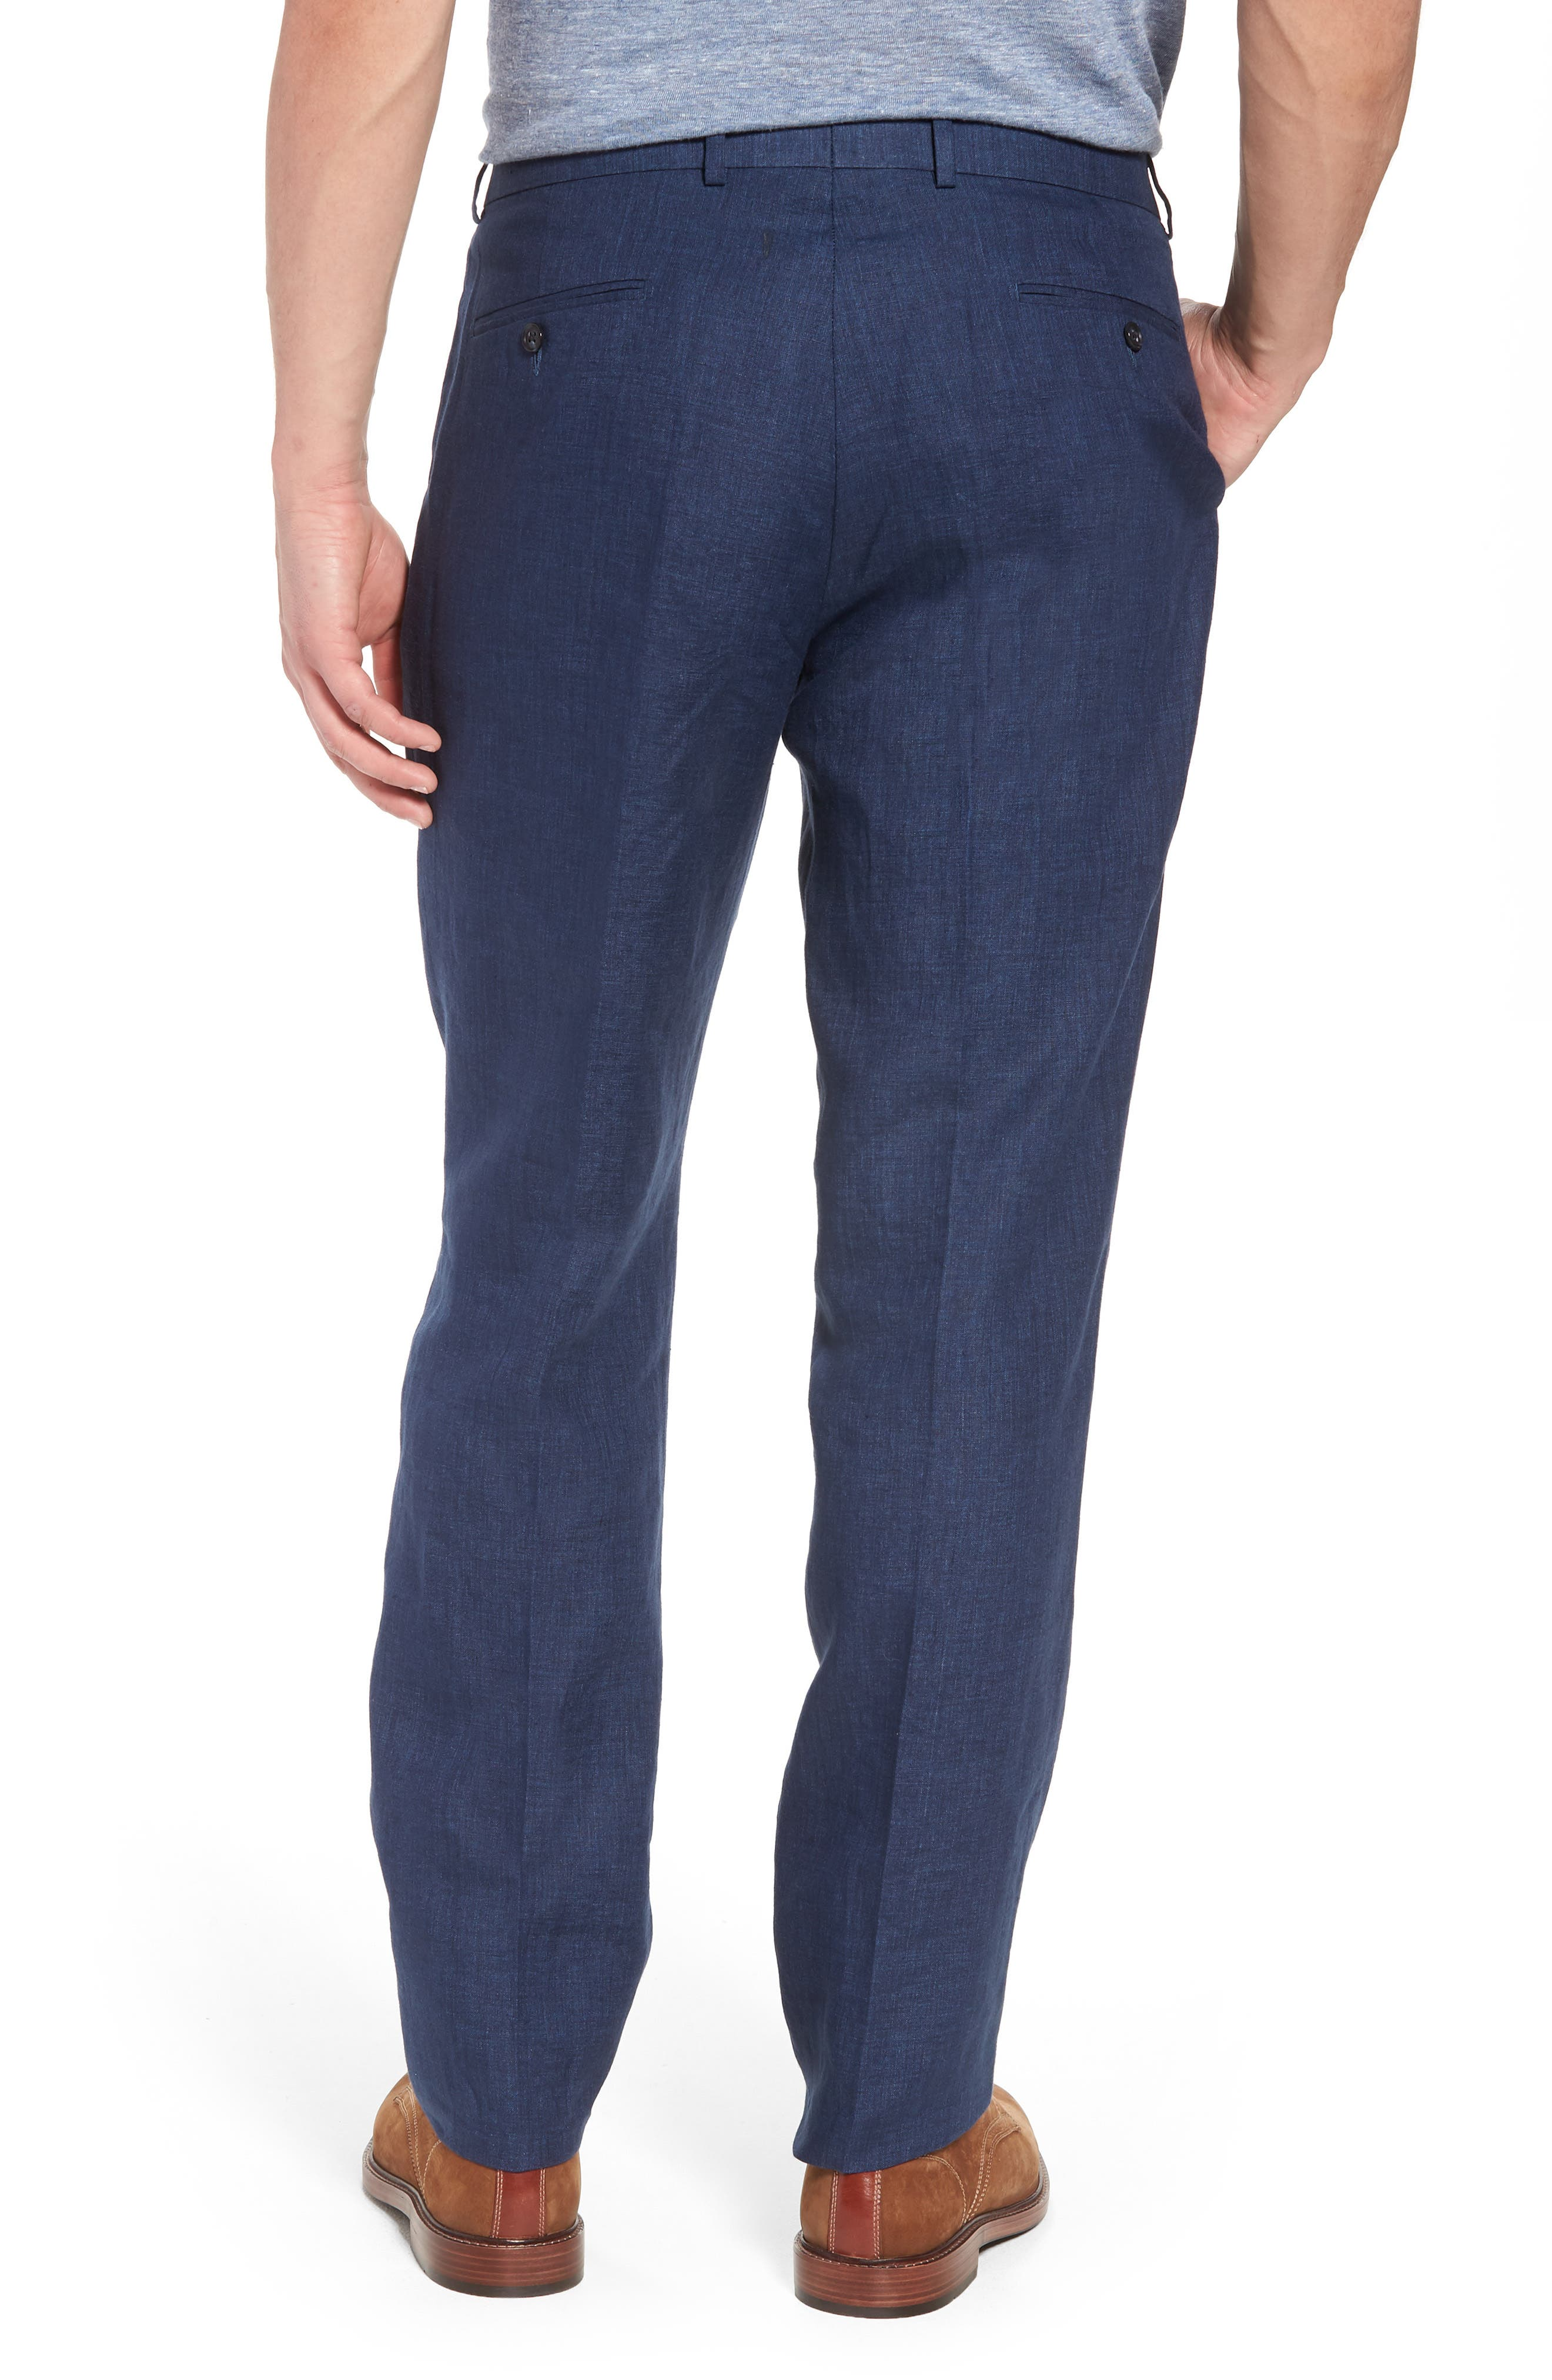 Andrew AIM Flat Front Linen Trousers,                             Alternate thumbnail 2, color,                             NAVY